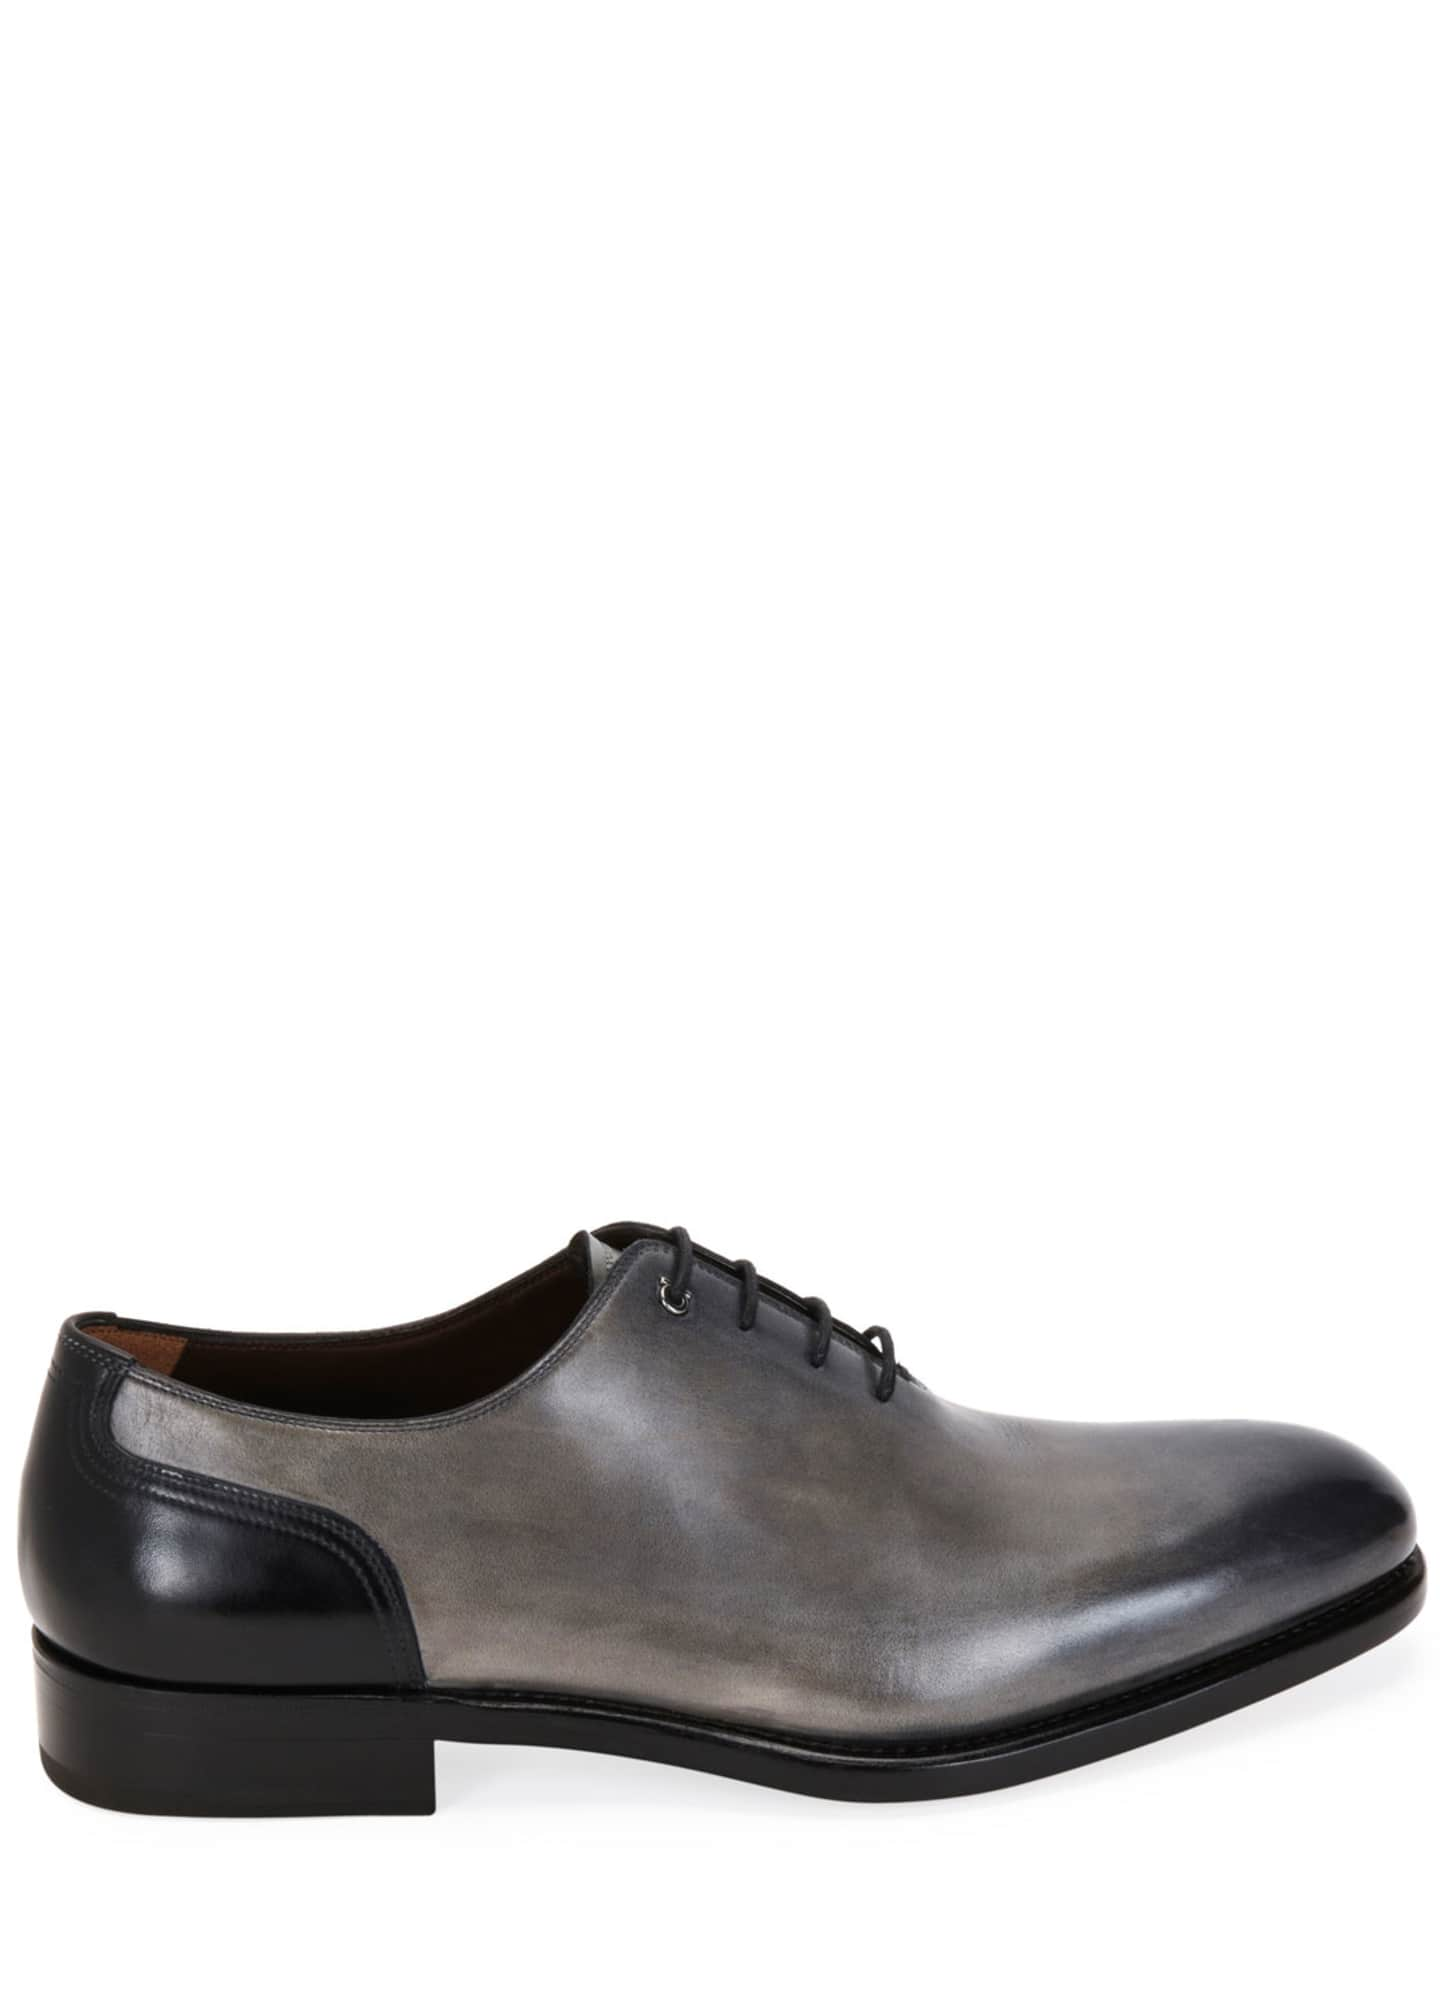 Image 3 of 4: Men's Barclay Burnished Leather Oxford Shoes